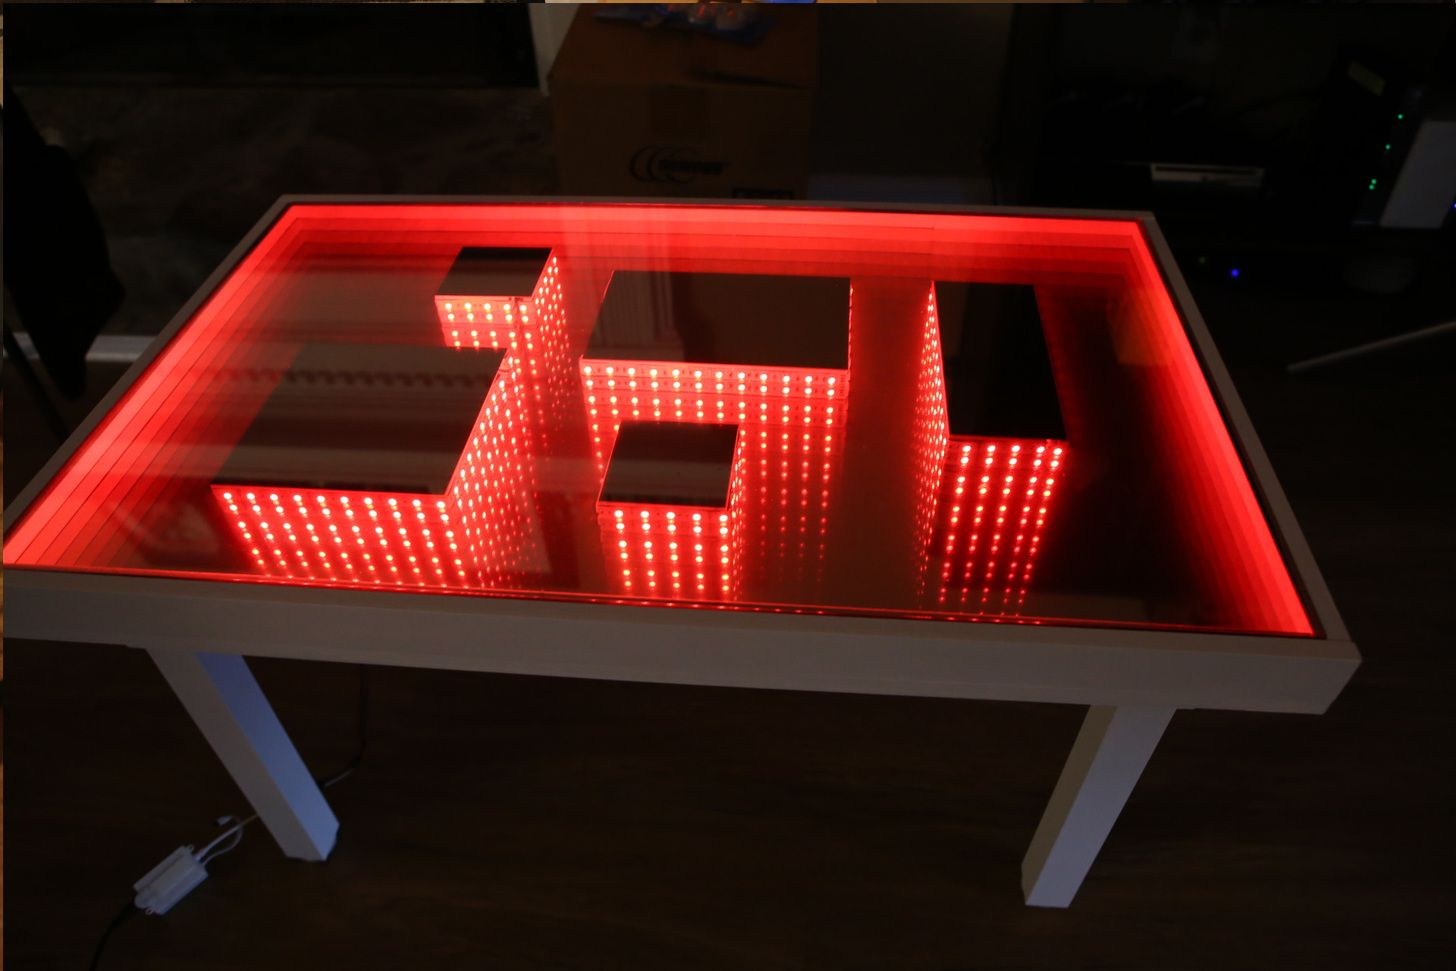 Infinity Mirror Table | Infinity mirror table, Mirror table